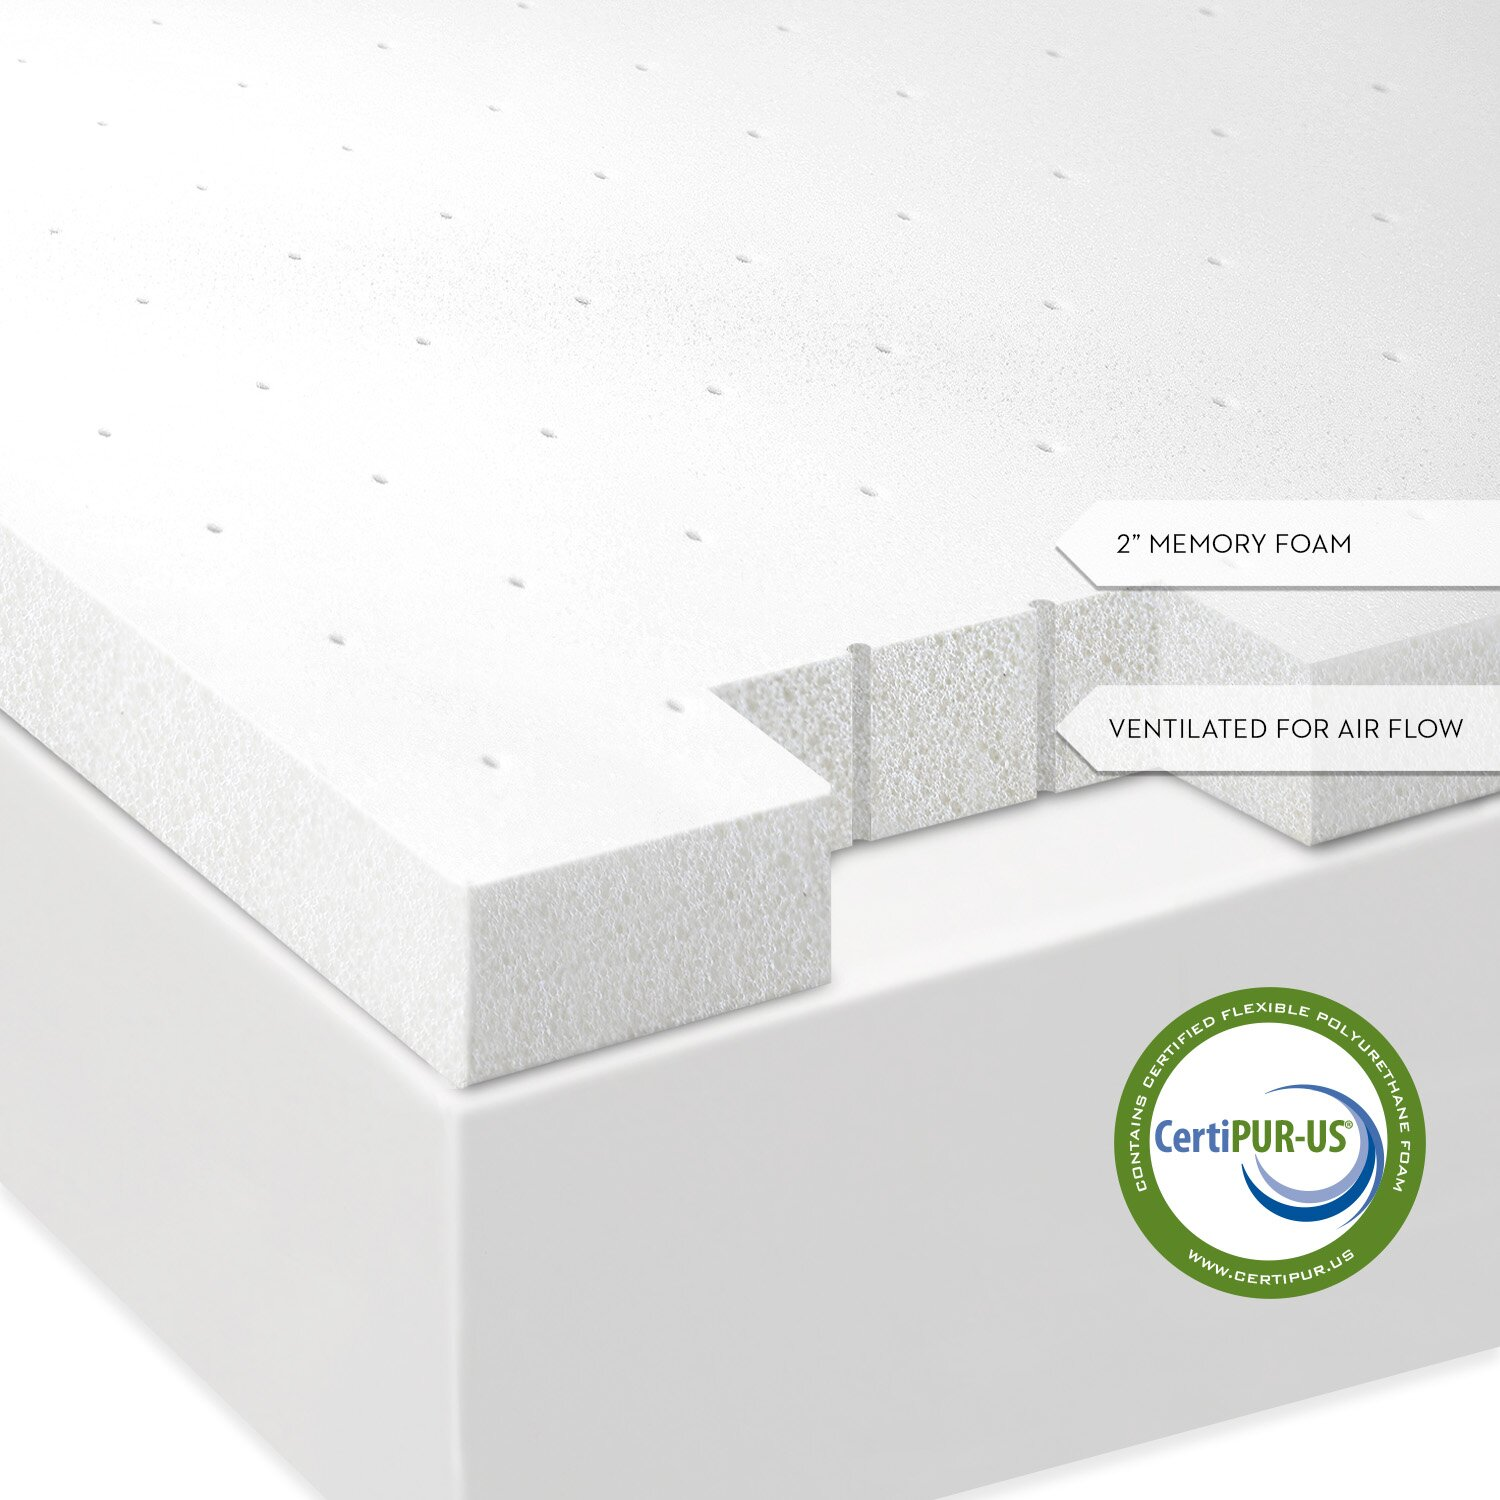 Serta 3 inch memory foam mattress topper - Malouf Ventilated Memory Foam Mattress Topper